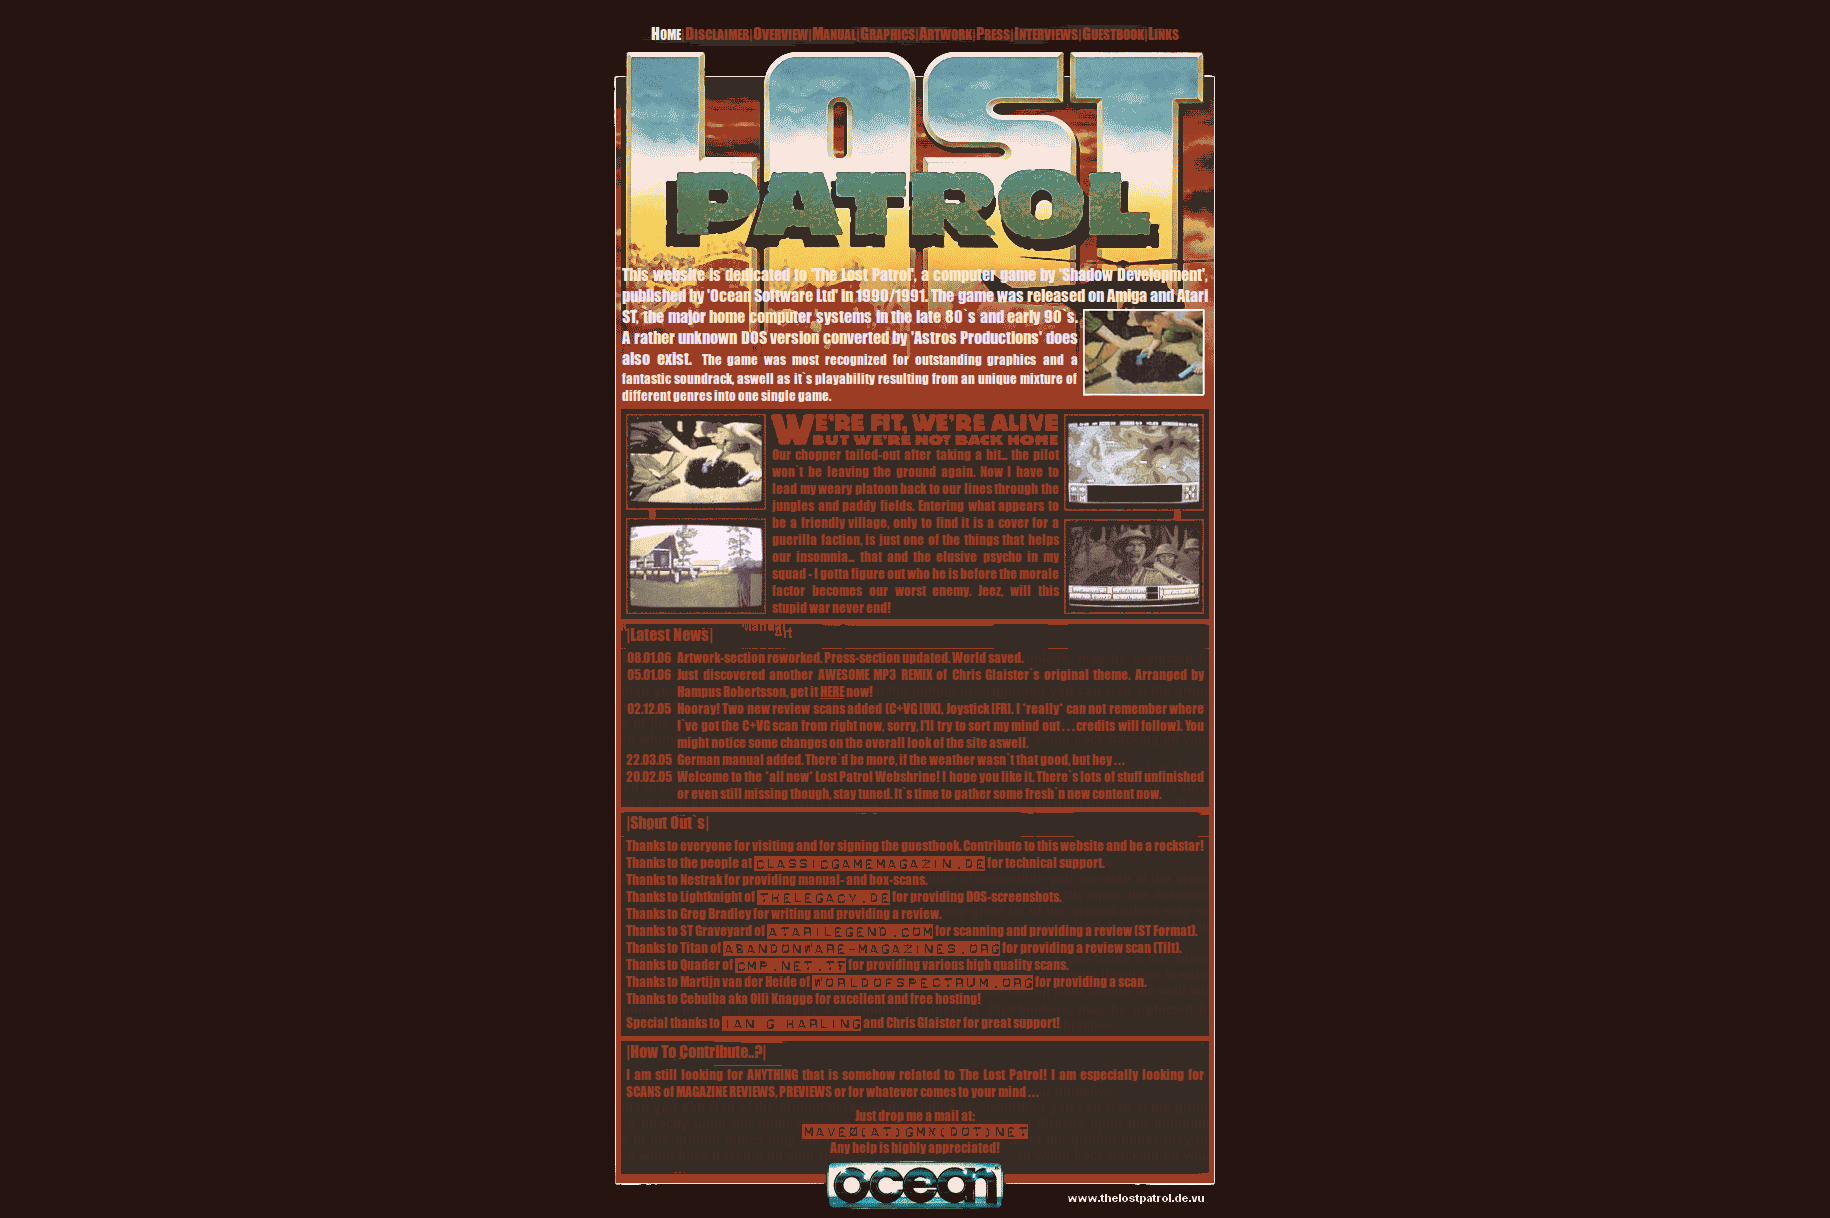 Screenshot of website The Lost Patrol